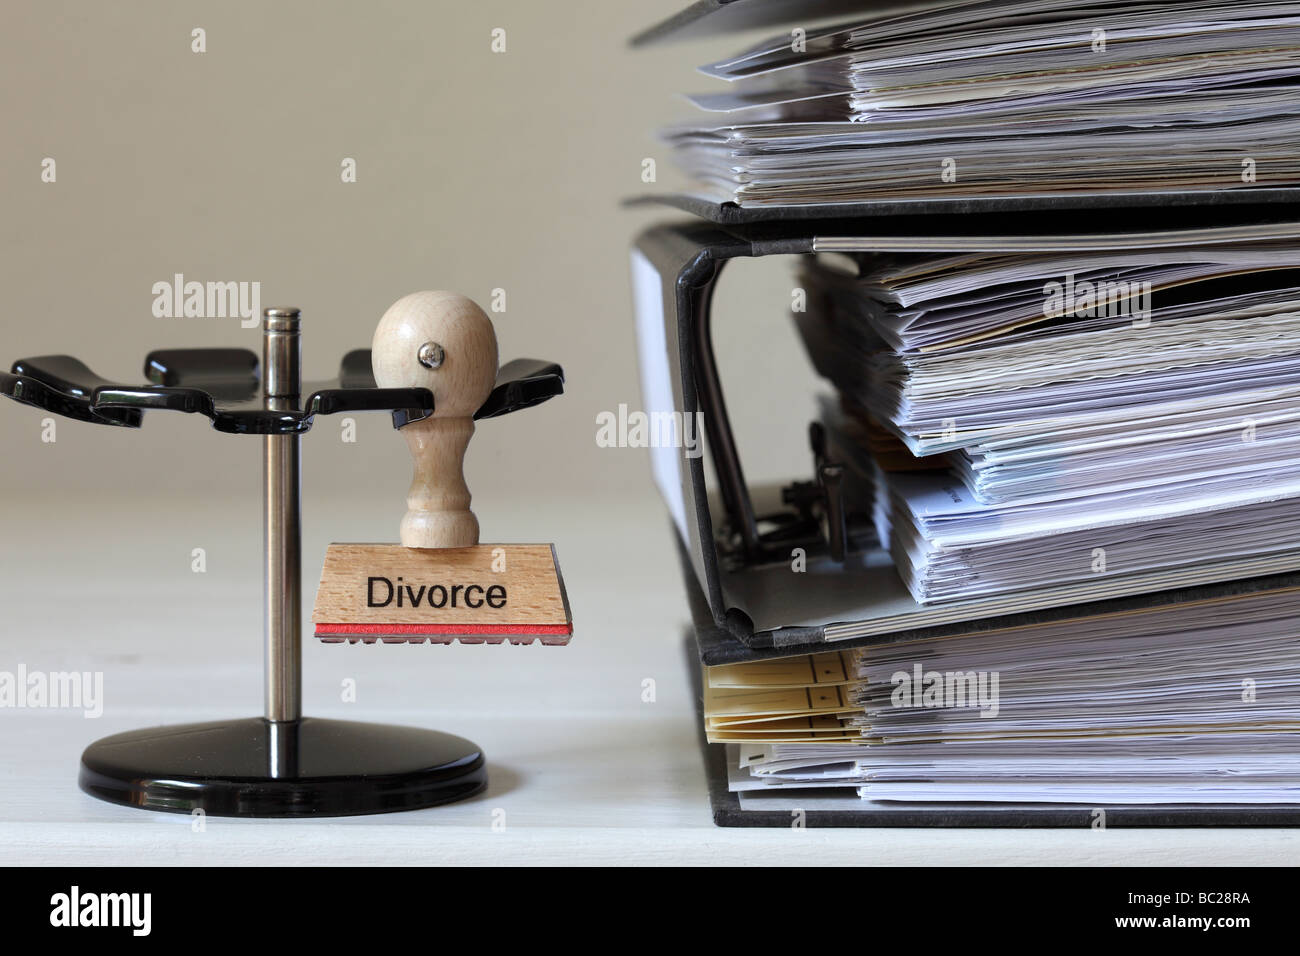 Stamp with inscription Divorce next to a pile of files - Stock Image